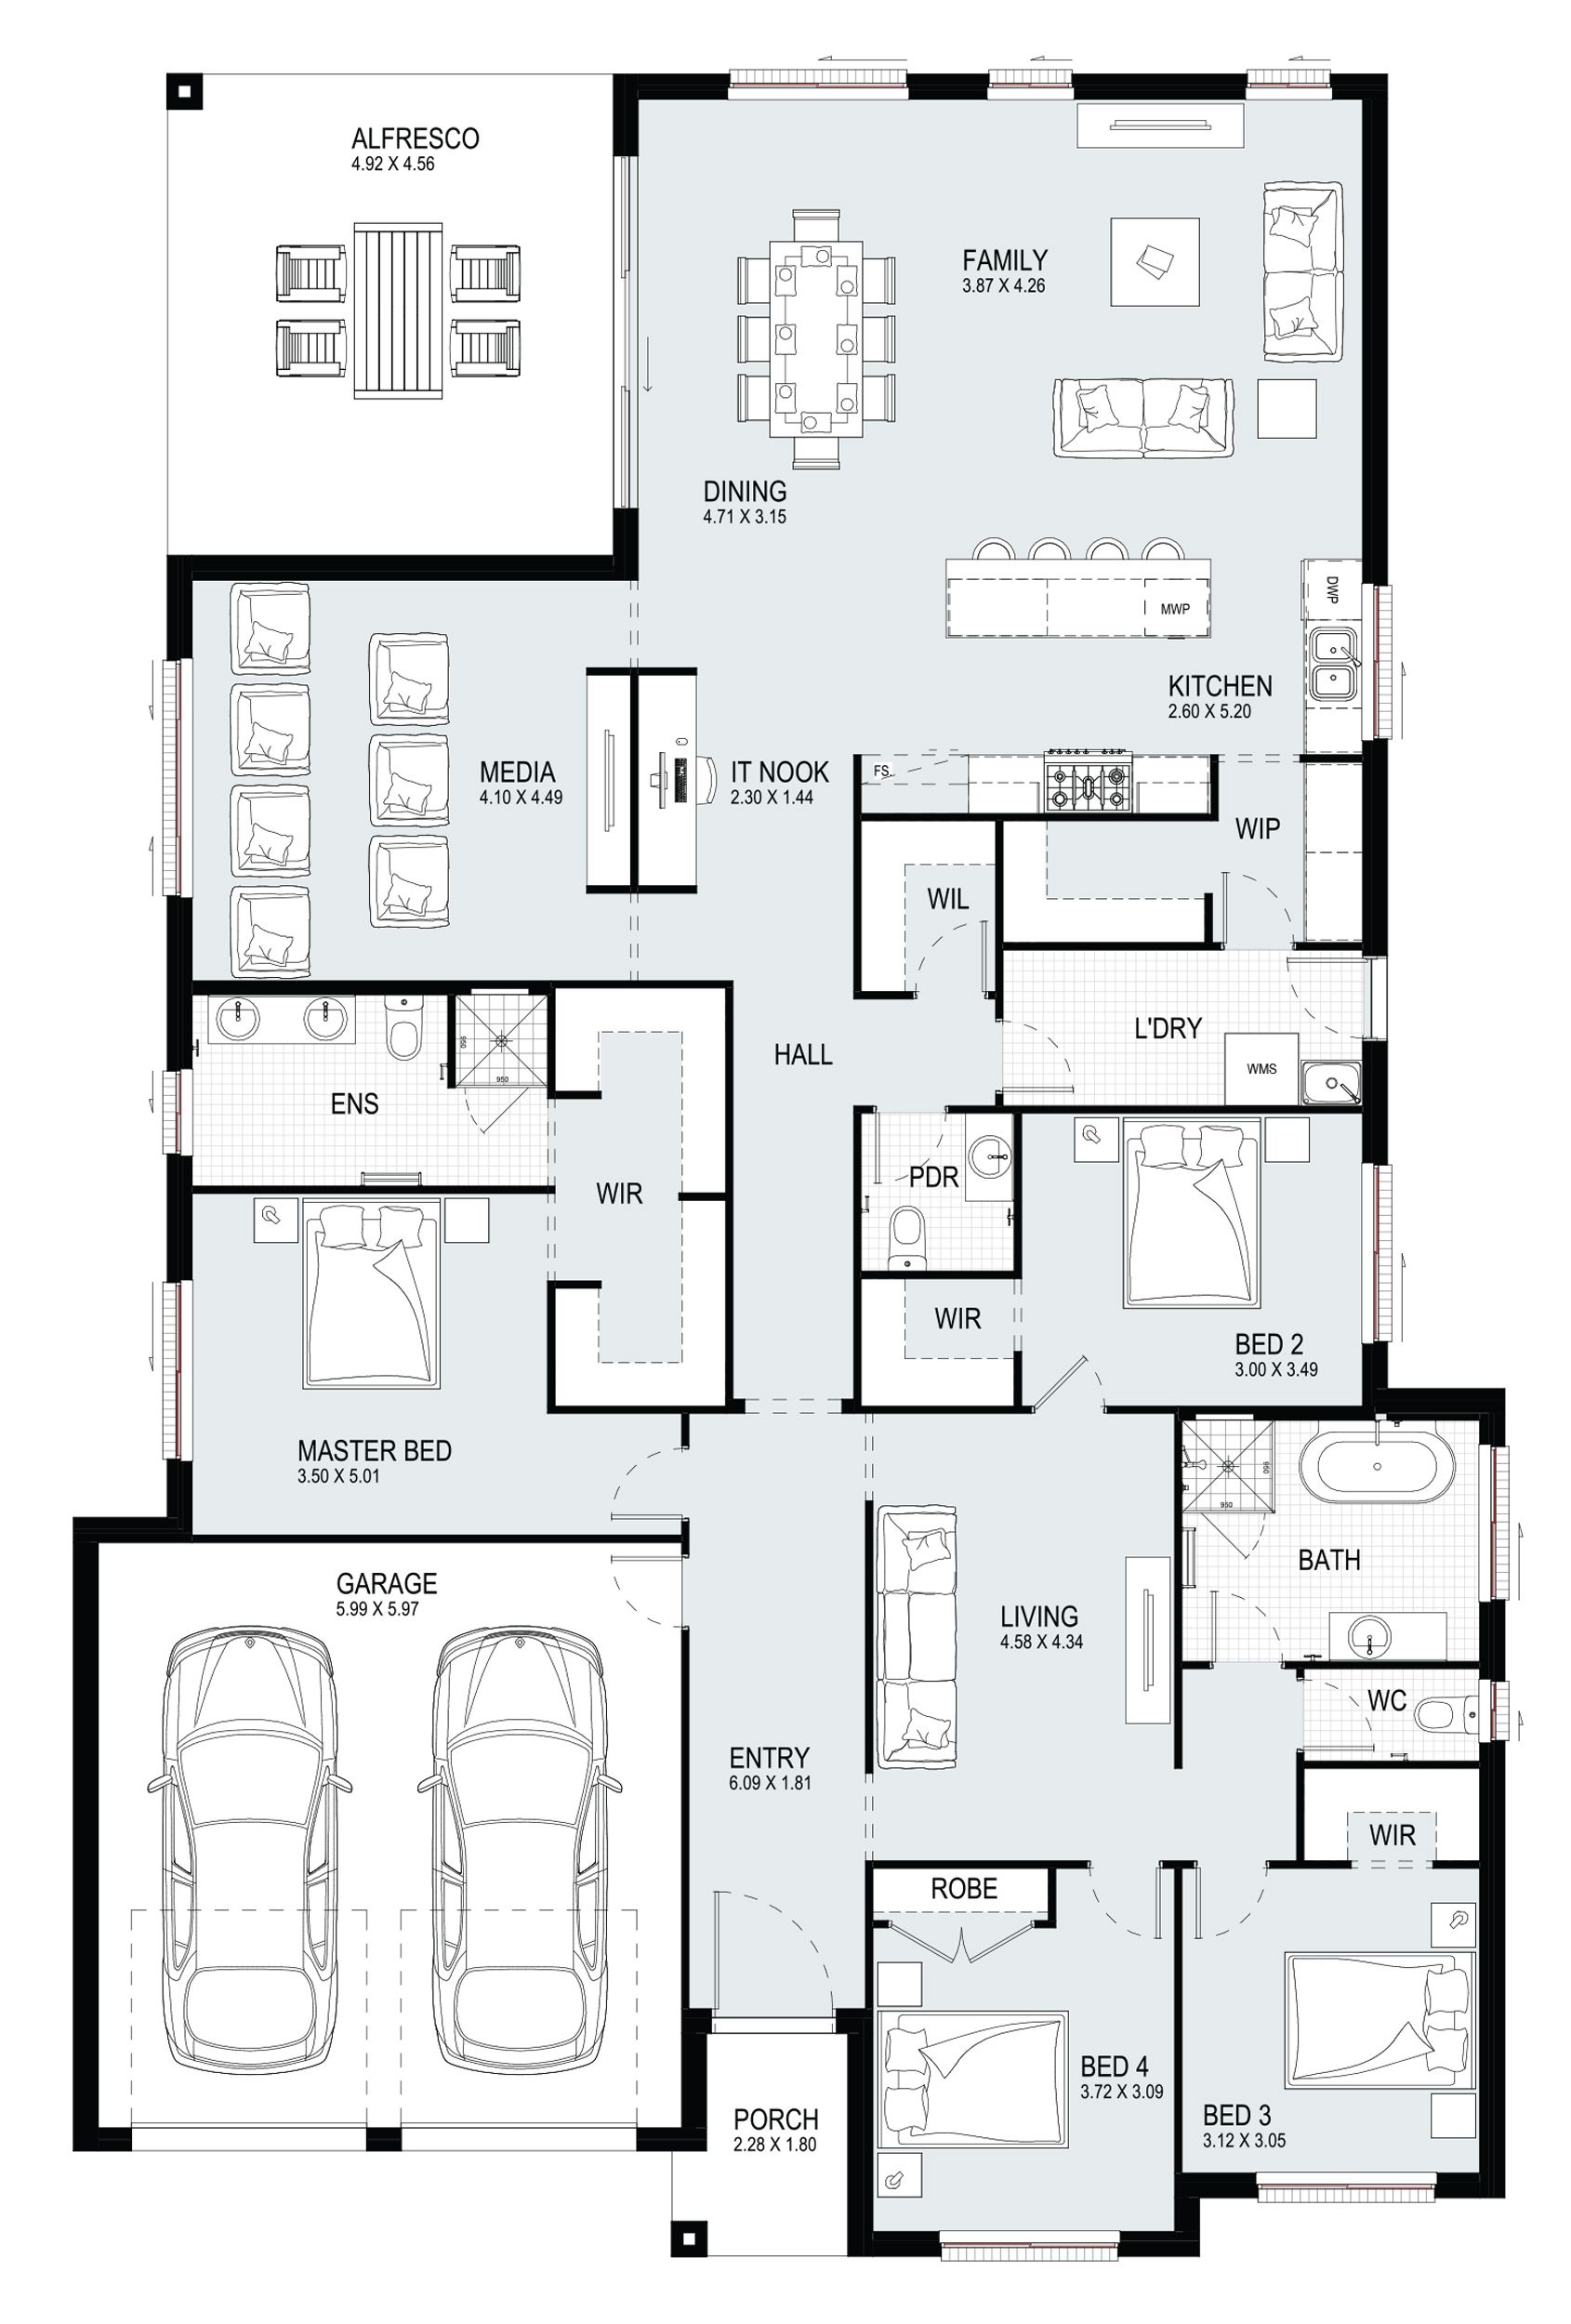 Jade 31 Single Level Floorplan By Kurmond Homes New Home Builders Sydney Nsw In 2020 Home Design Floor Plans Model House Plan New House Plans